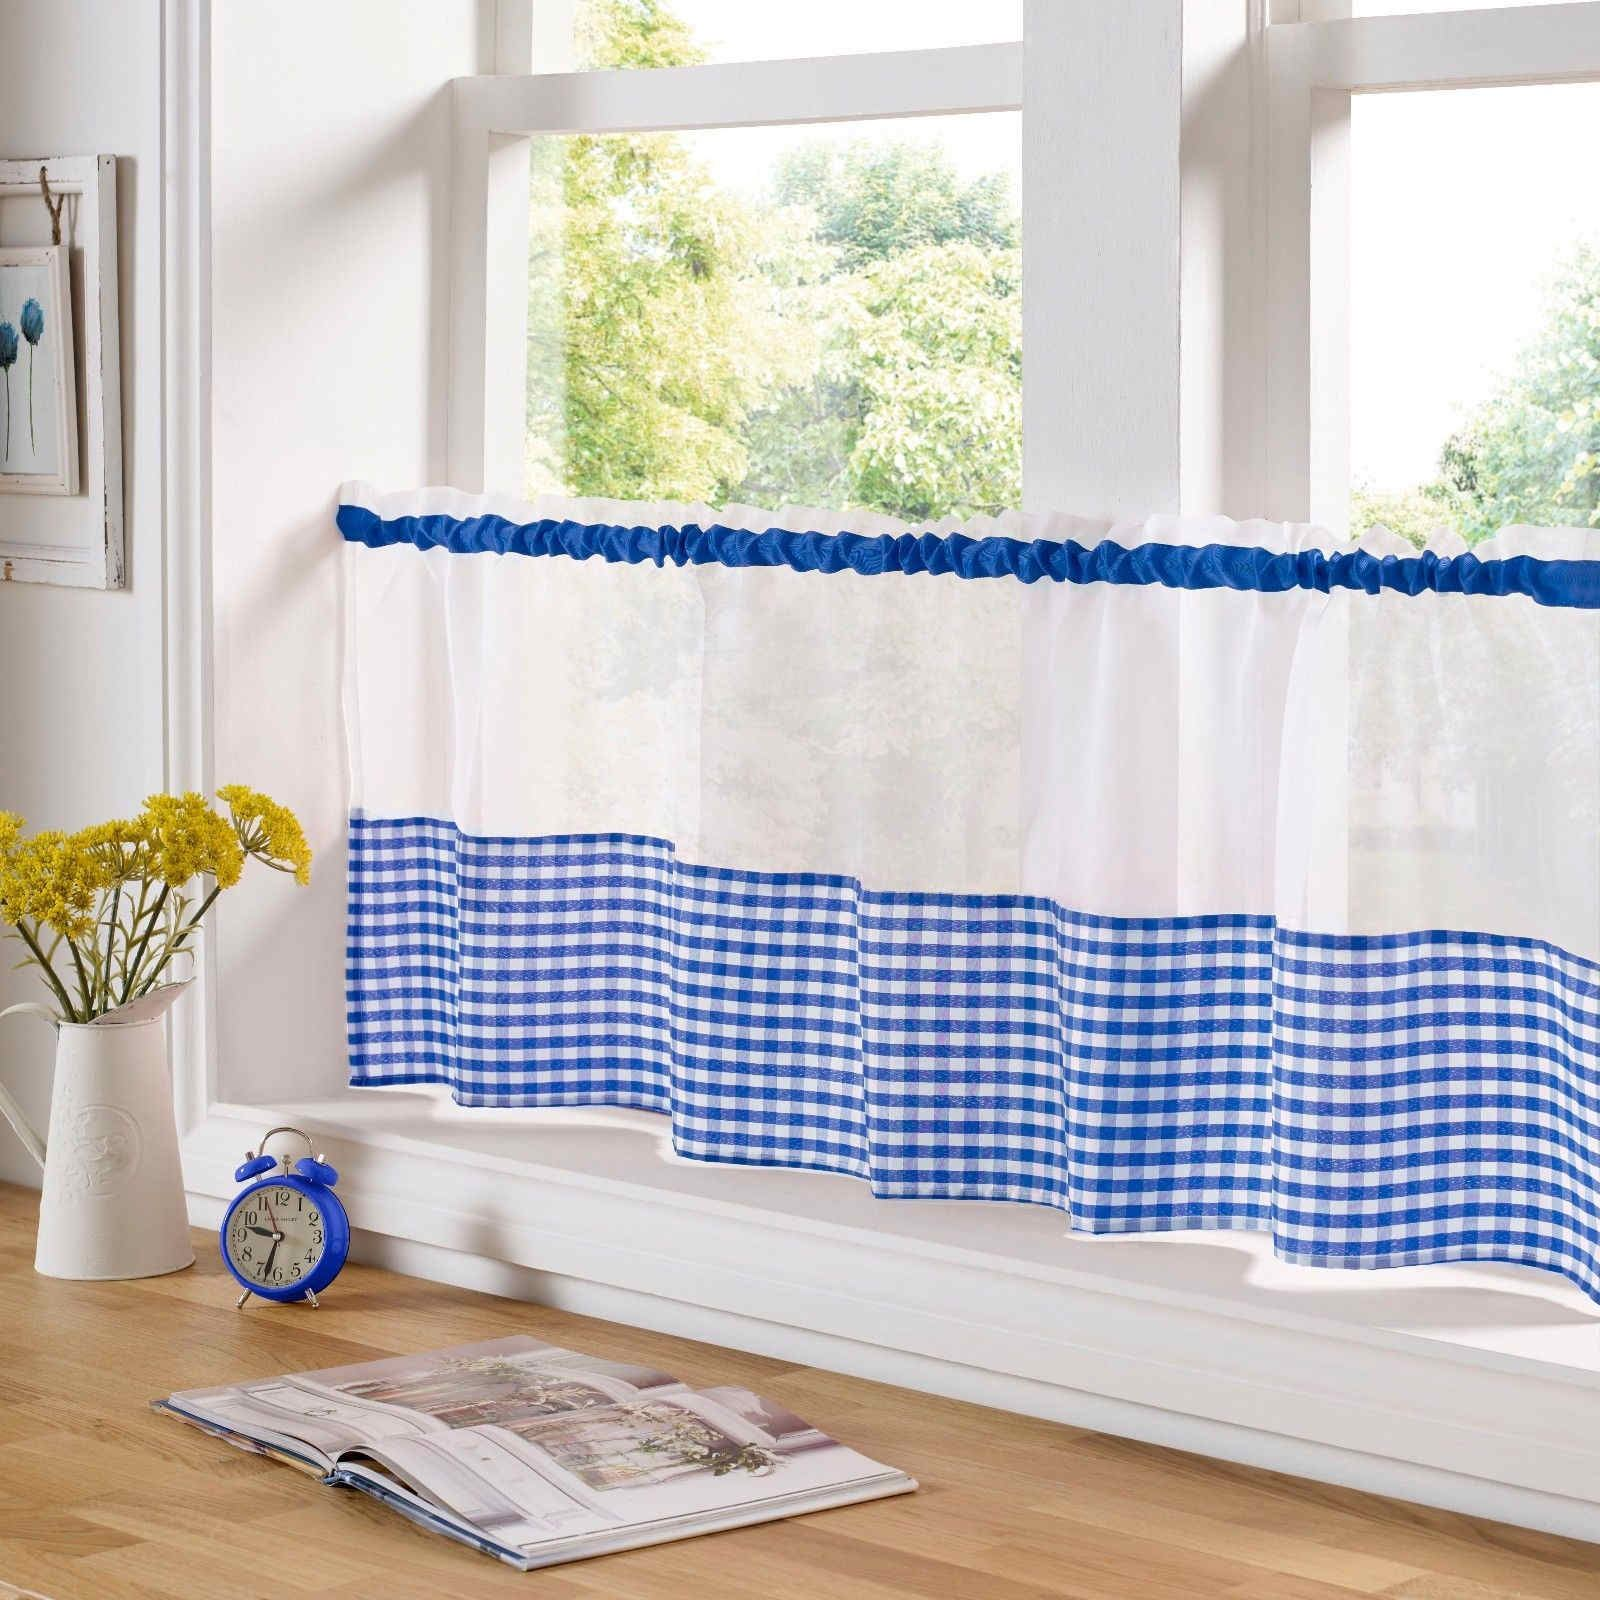 COUNTRY-KITCHEN-GINGHAM-CURTAIN-PAIR-WINDOW-DRAPES-DINING-ROOM